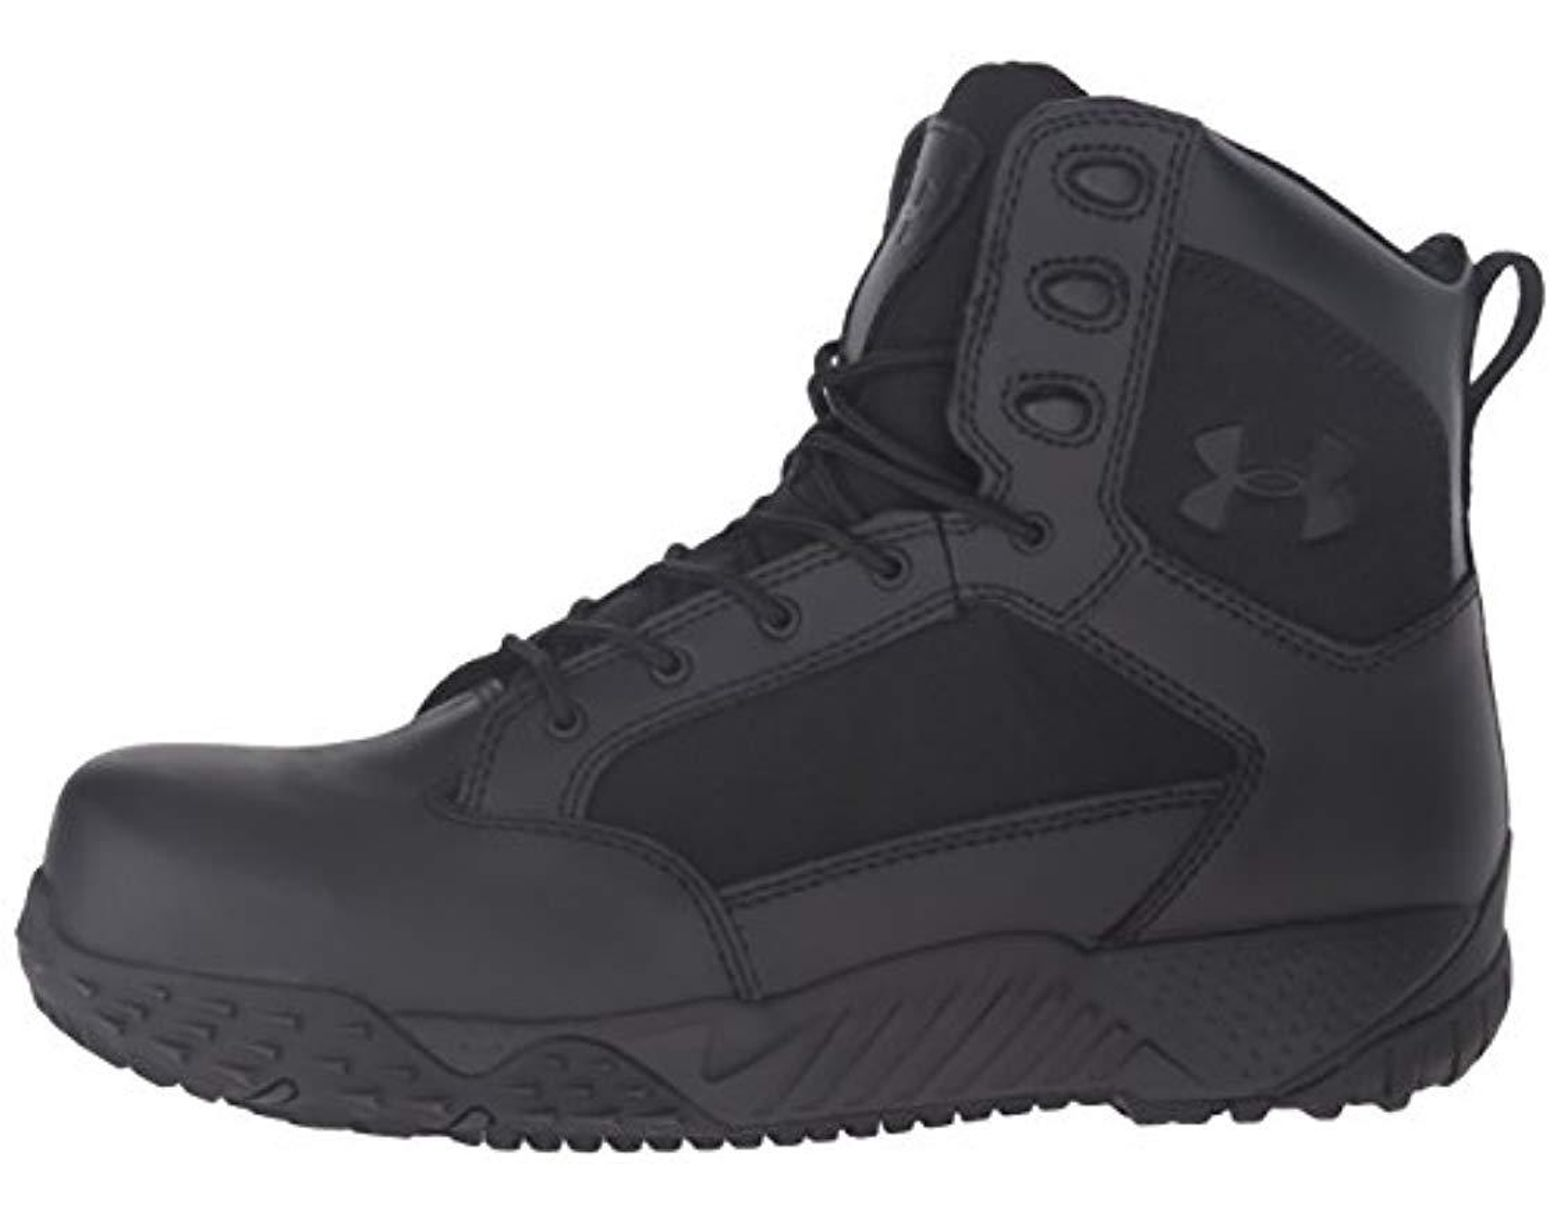 36adf1cfbd Men's Black Stellar Tactical Protection Boating Shoes